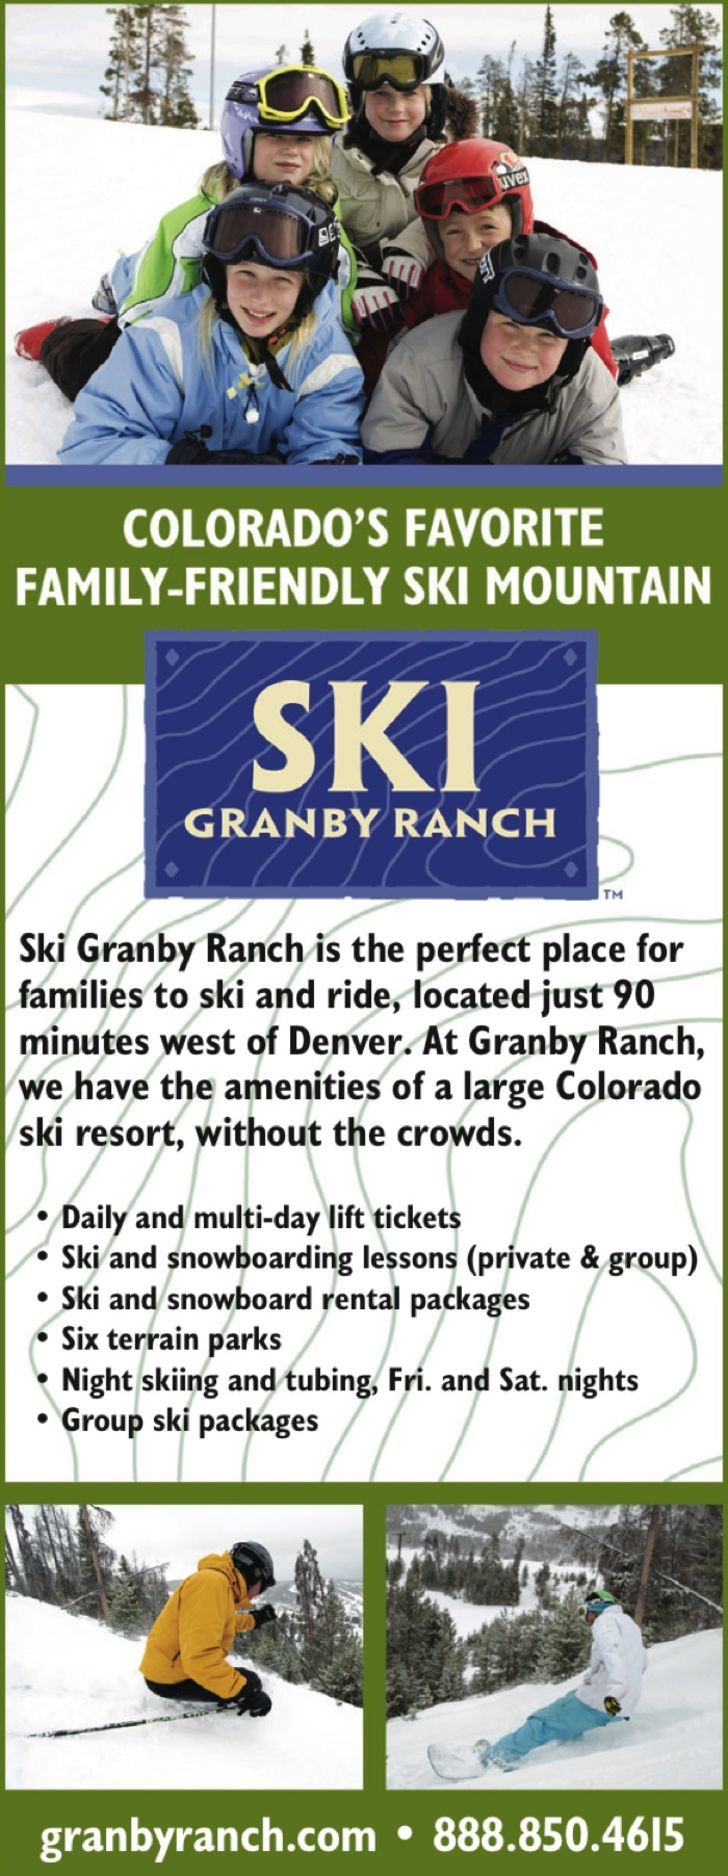 Ski Granby